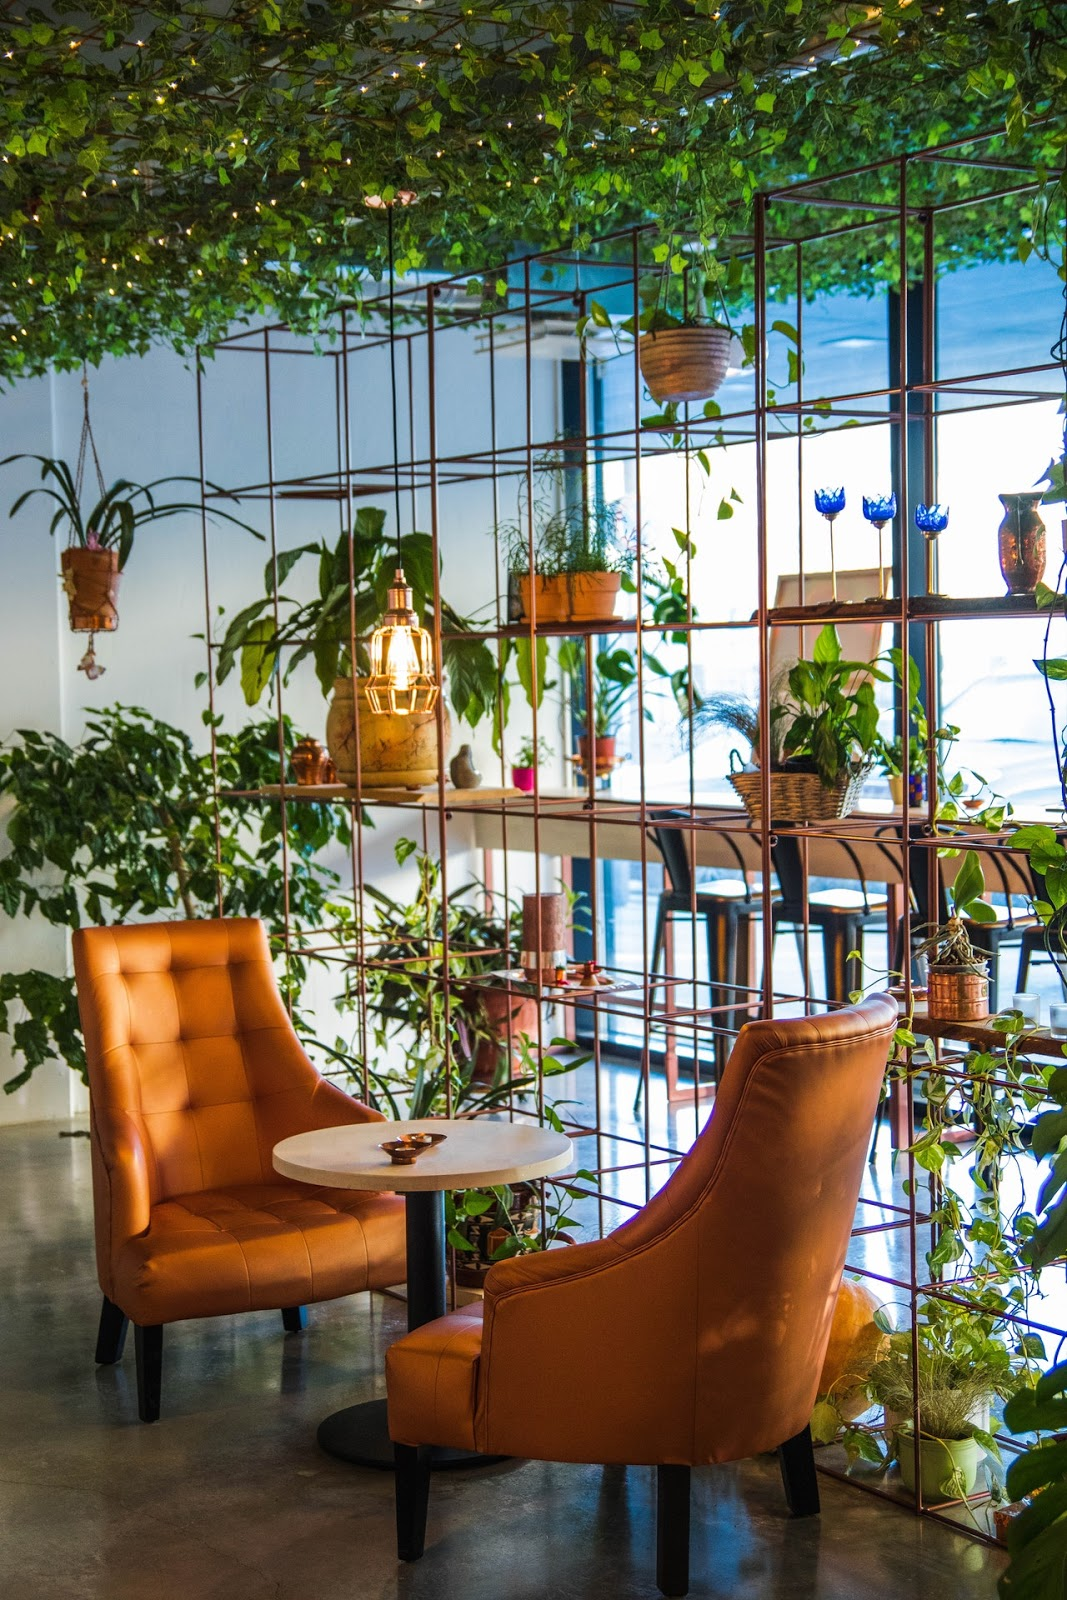 How to Create a Garden Oasis Indoors